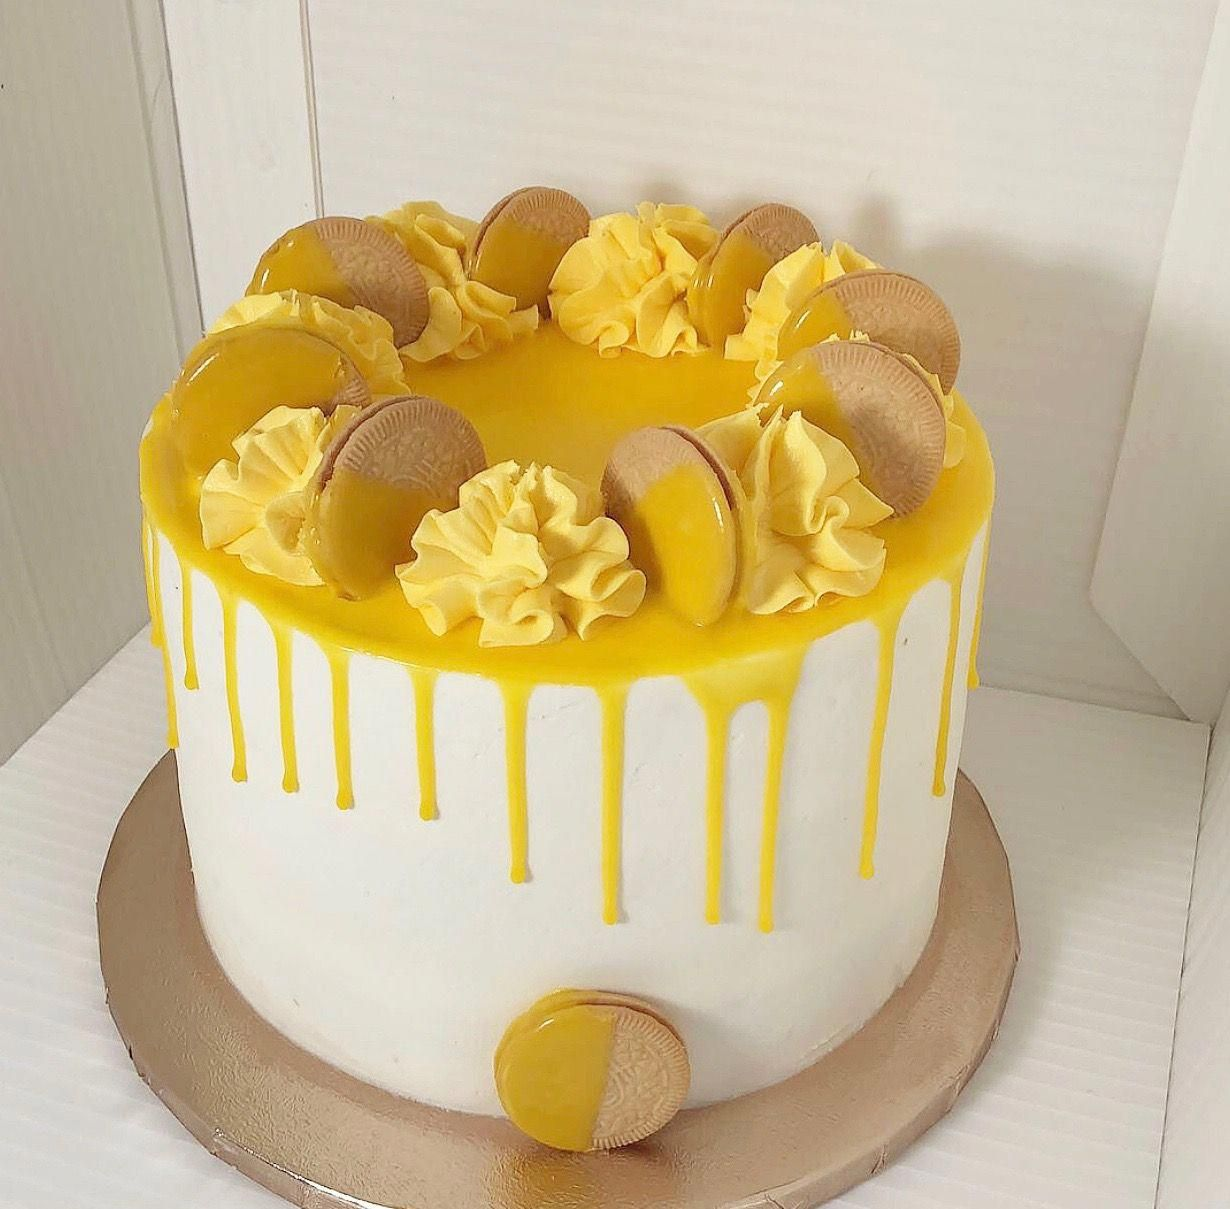 How To Make A Drip Cake To Wow The Party With Images Lemon